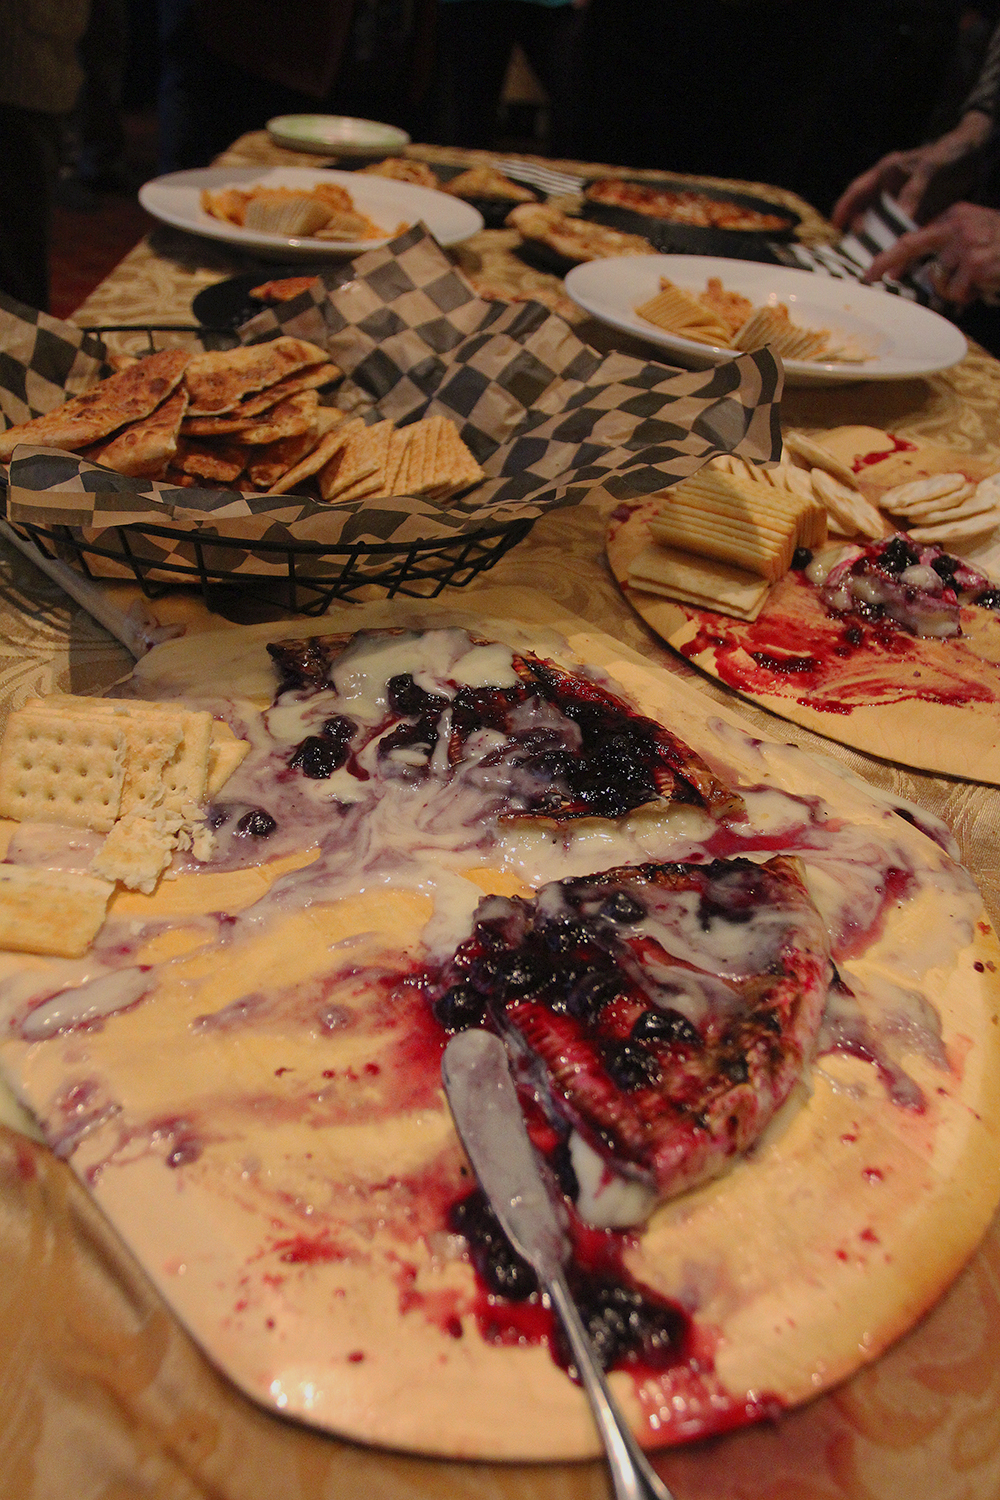 Stormcloud Brewing Company cheese platter local foods Frankfort Film Festival 2015 Garden Theater Frankfort MIchigan sponsor party